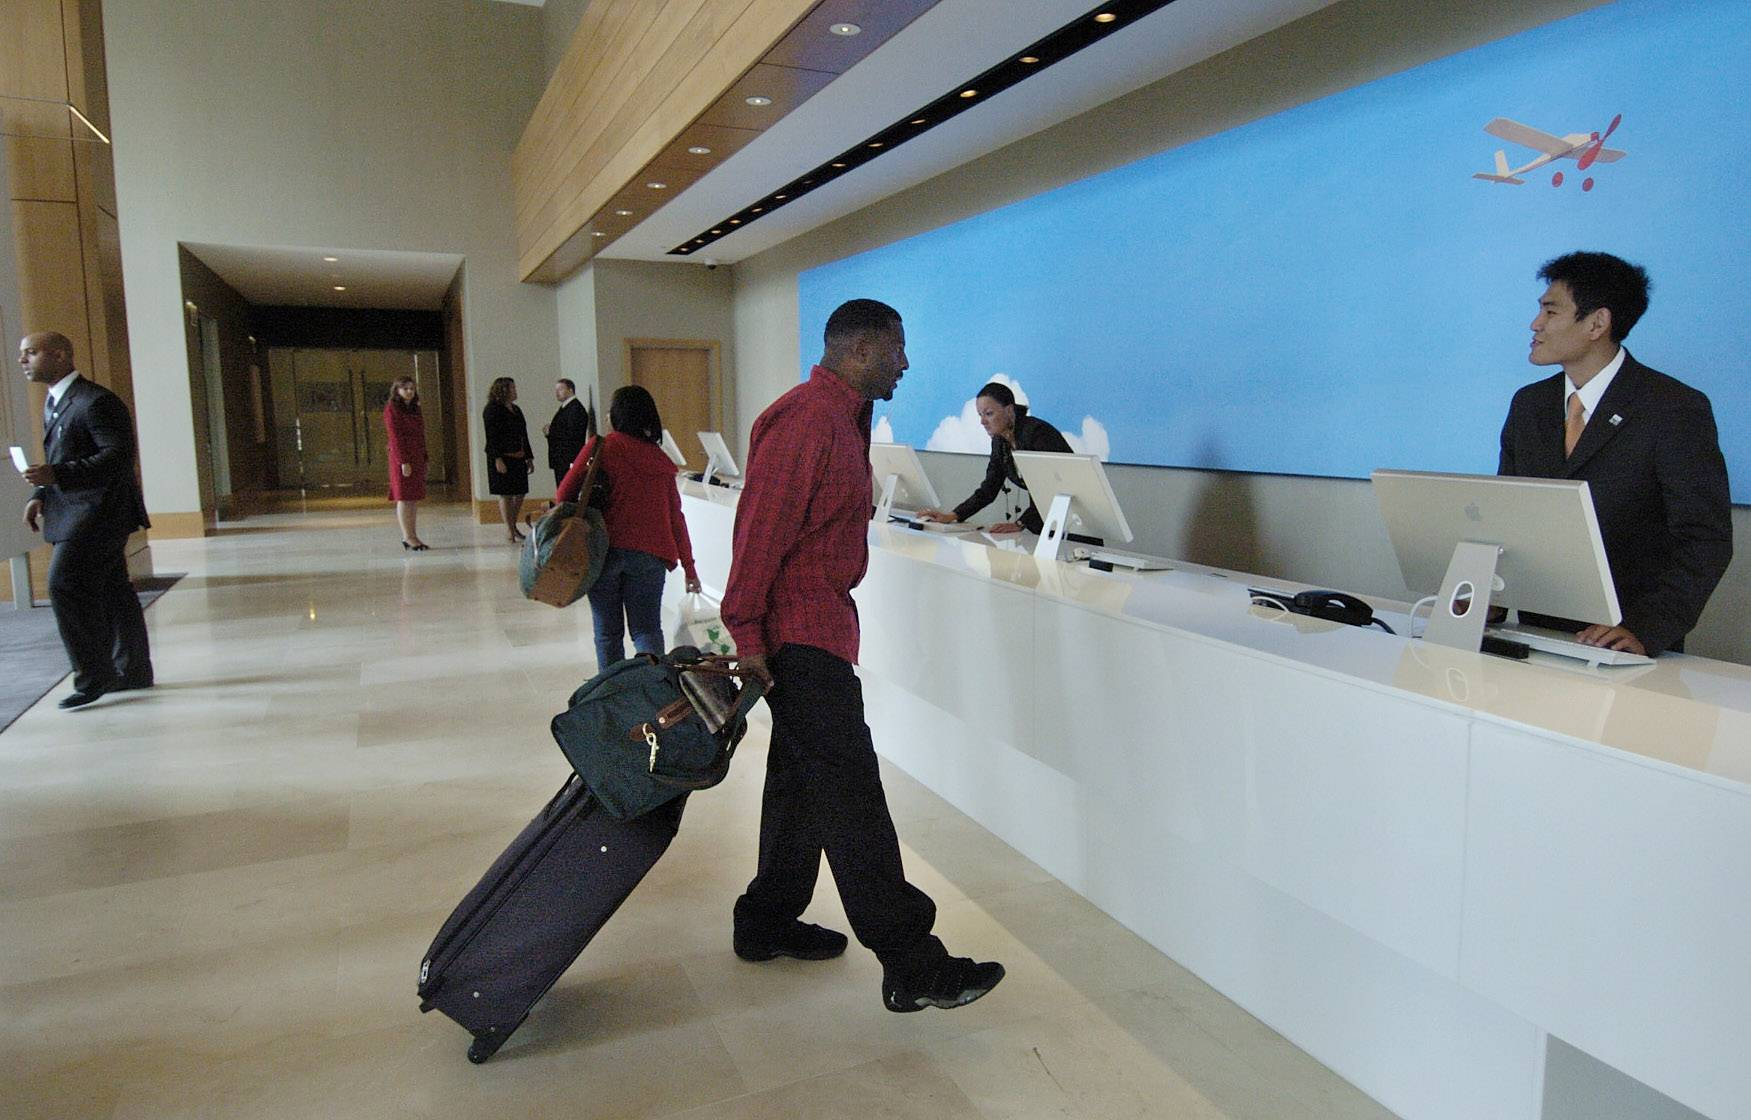 Darryl Coffee of Gary, Ind., left, checks out after spending the weekend at the Intercontinental Chicago O'Hare Hotel in Rosemont in this file photo.